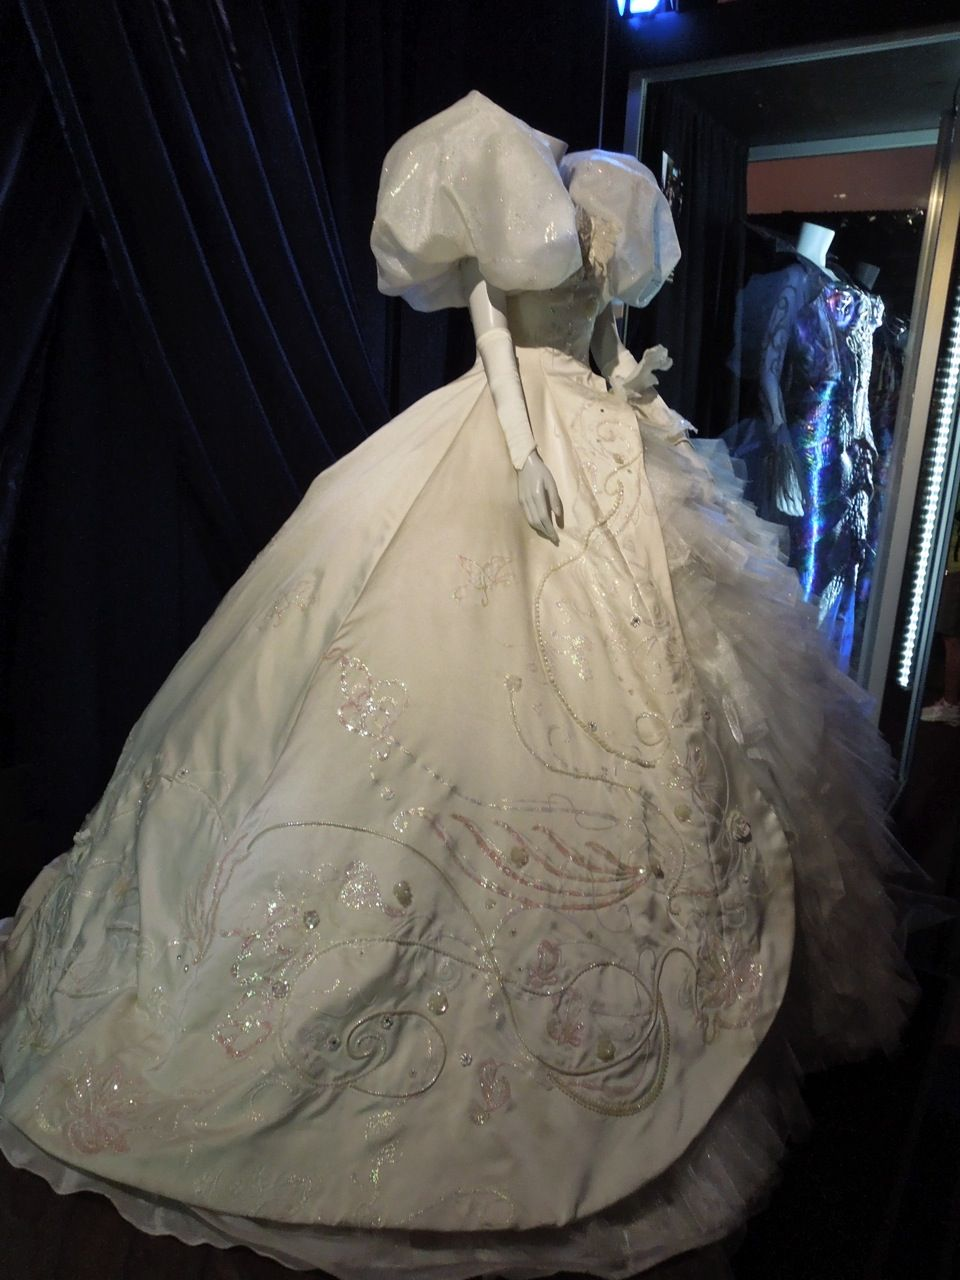 Giselle Enchanted Fairytale Princess Gown Movie Costumes Theatre: Enchanted Giselle Wedding Dress Art At Websimilar.org